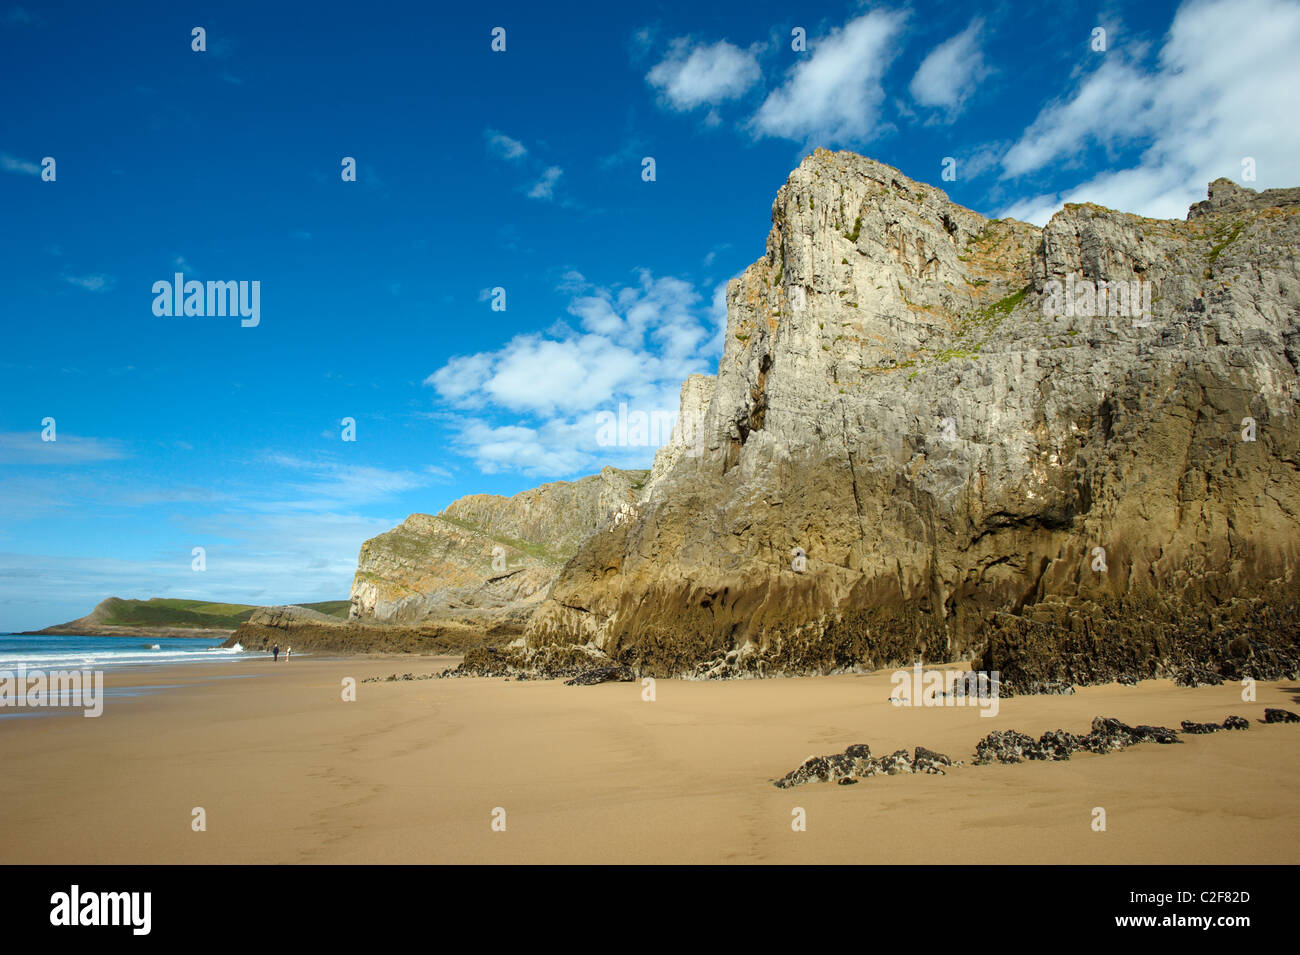 Sea cliffs, Mewslade, Gower Peninsula, Wales, UK - Stock Image